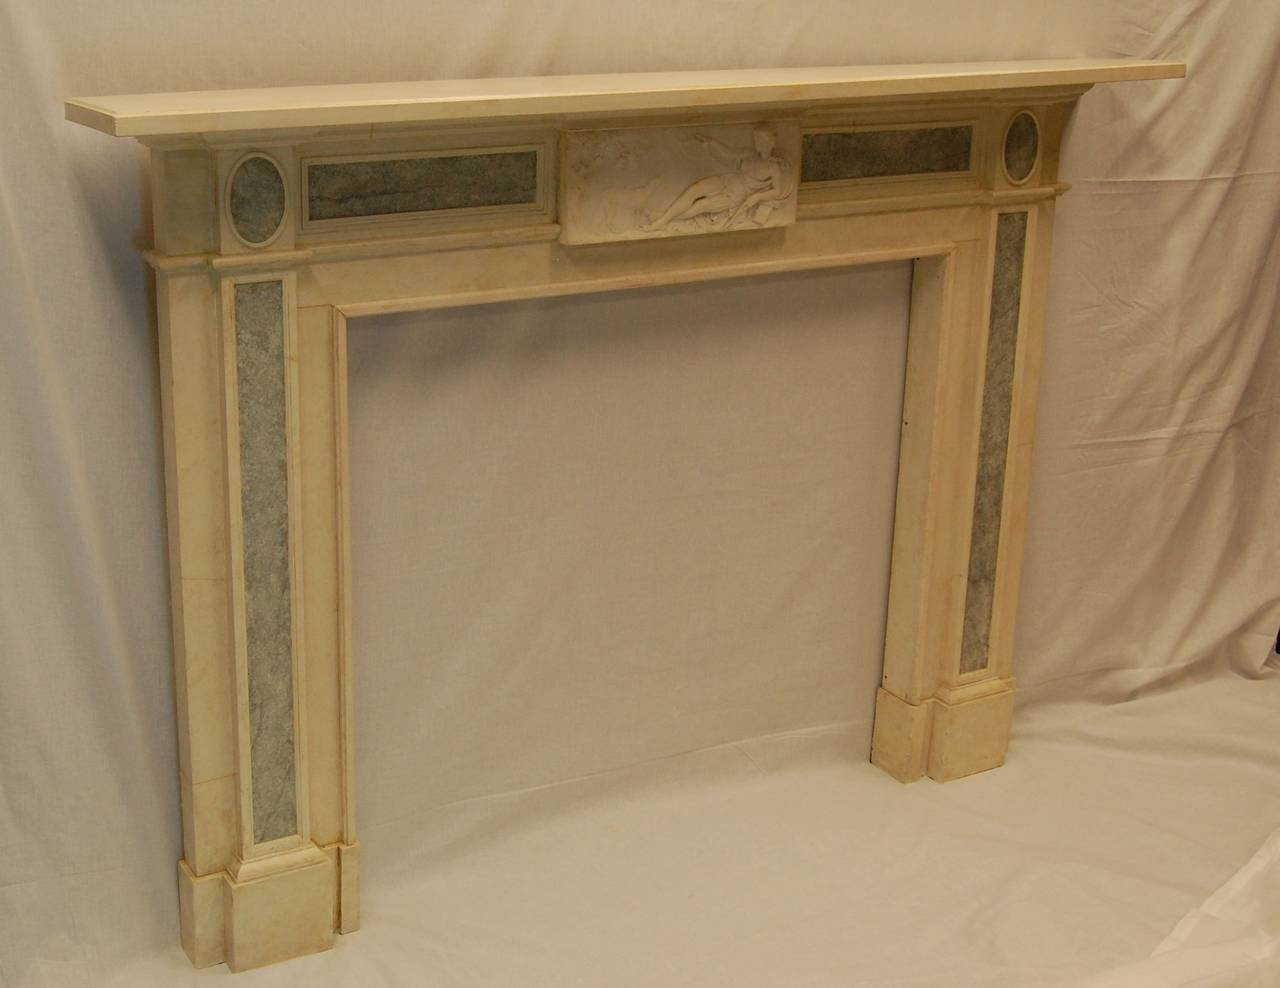 Faux marble fireplace mantels faux marble fireplace mantel for Faux marble fireplace mantels